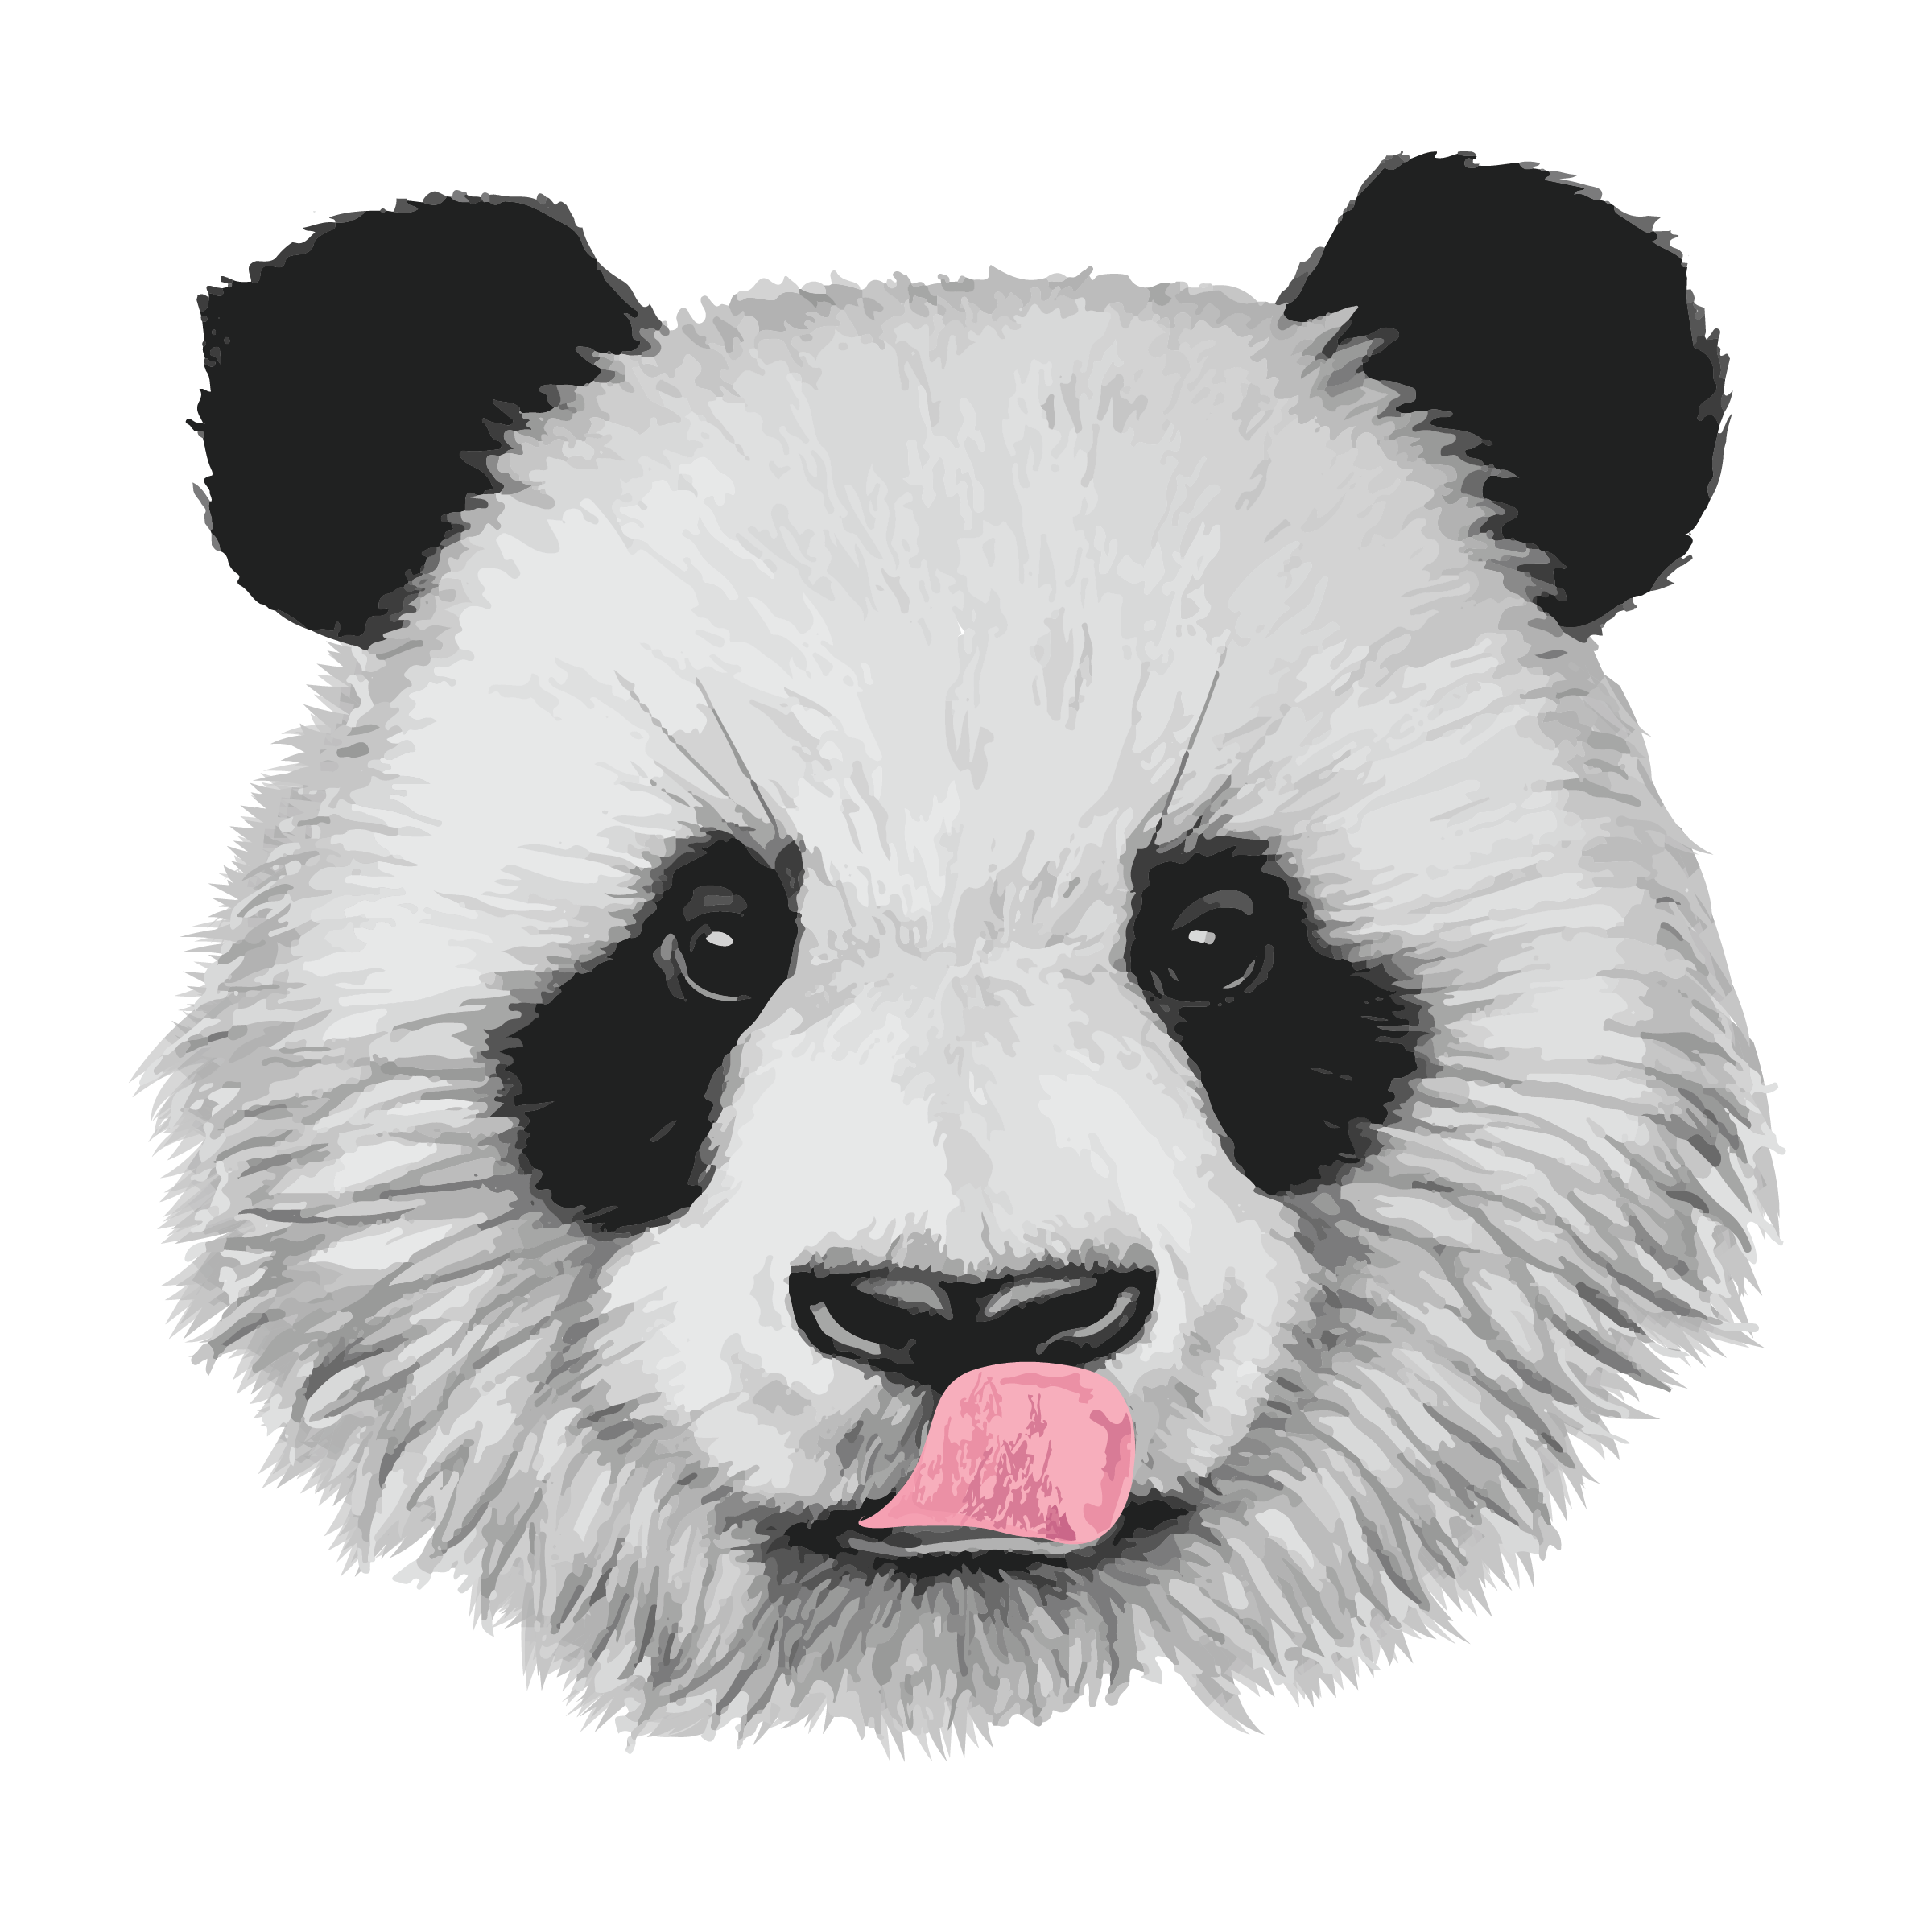 Lethalchris drawing. Panda bear by on